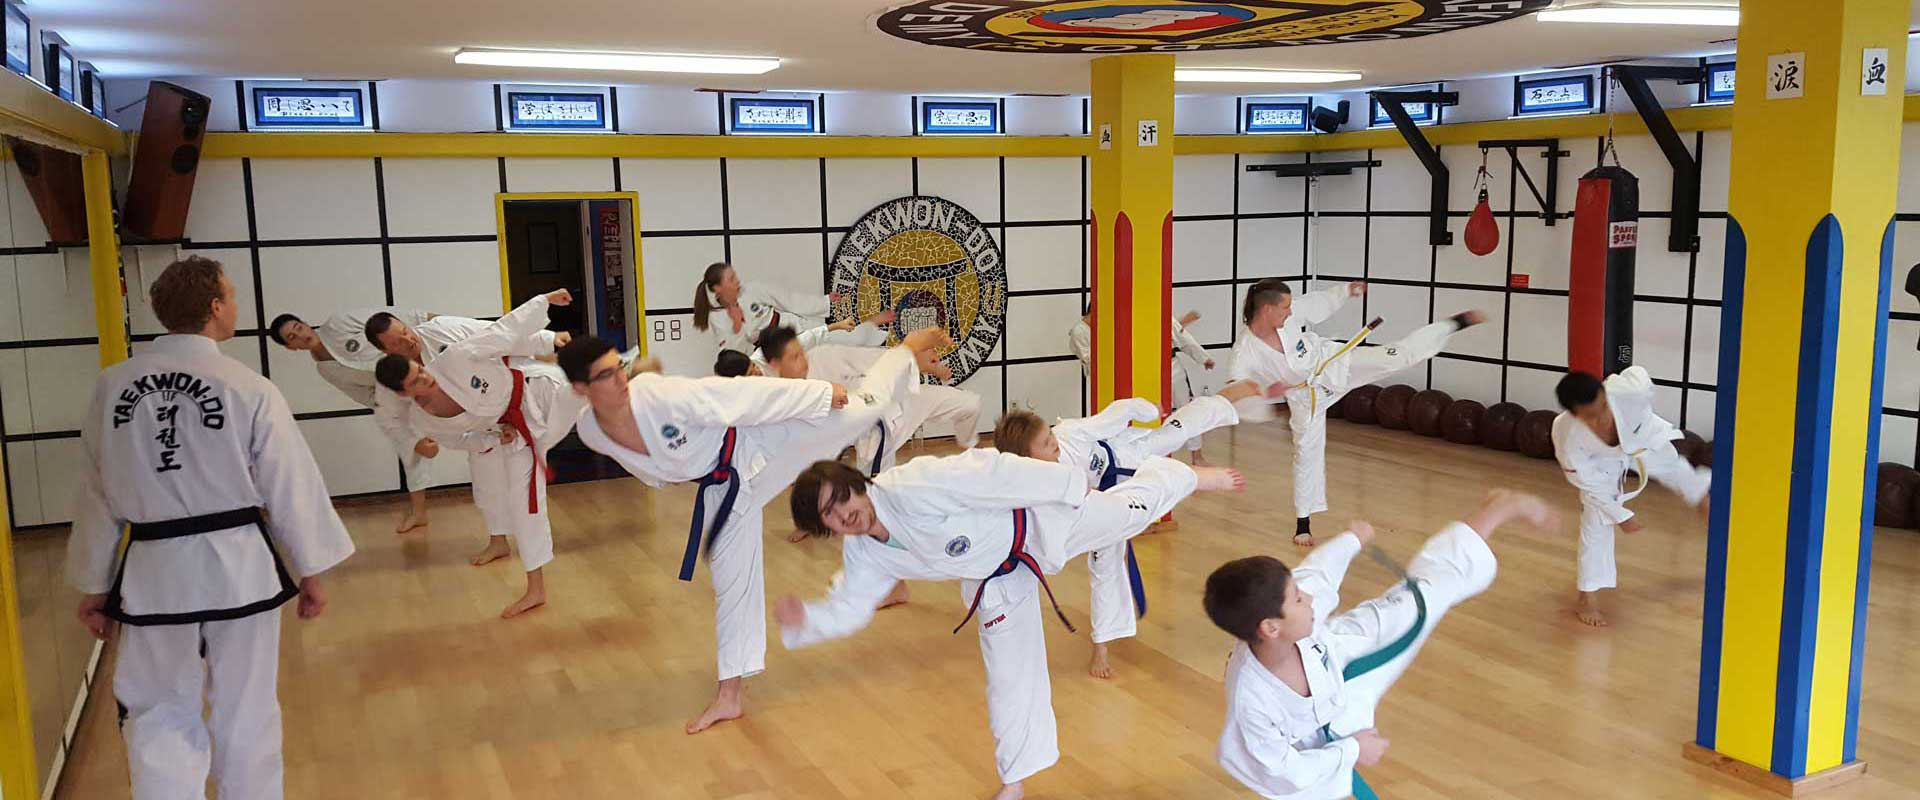 Taekwon-Do Training in der Taekwon-Do Academy